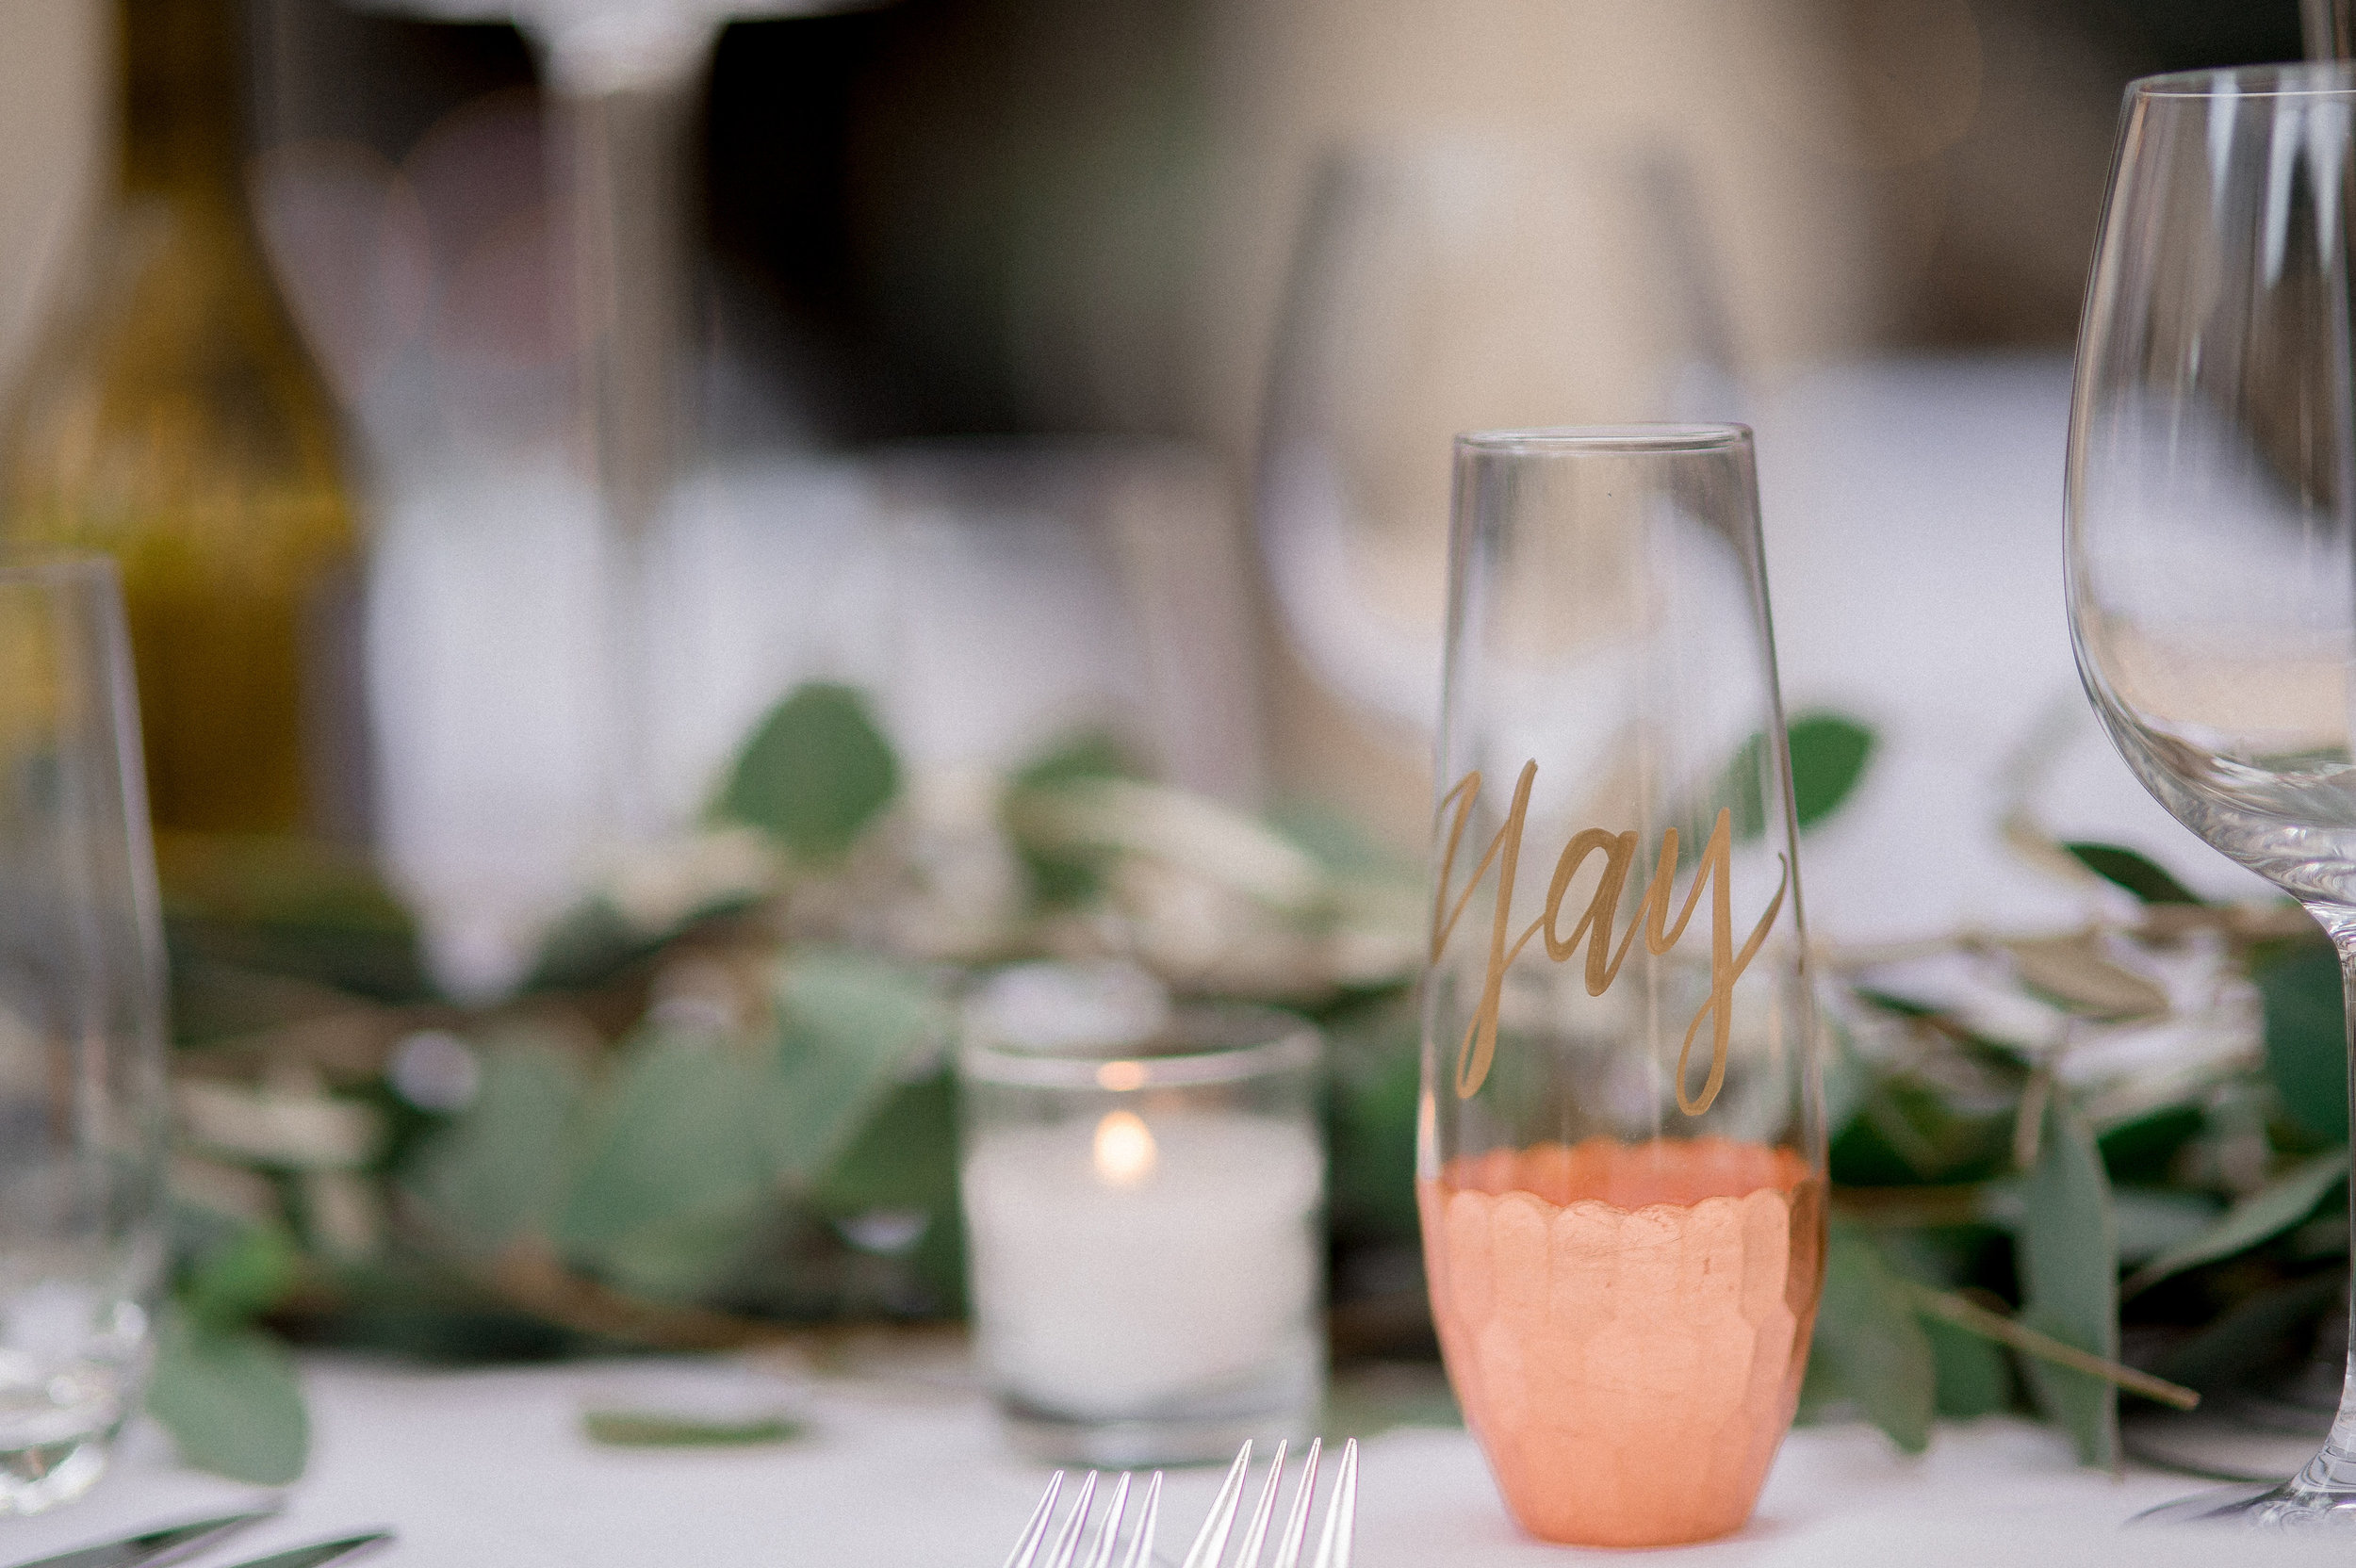 socal-wedding-consultant-best-wedding-planners-in-southern-california-cafe-pinot-wedding-planner47.jpg